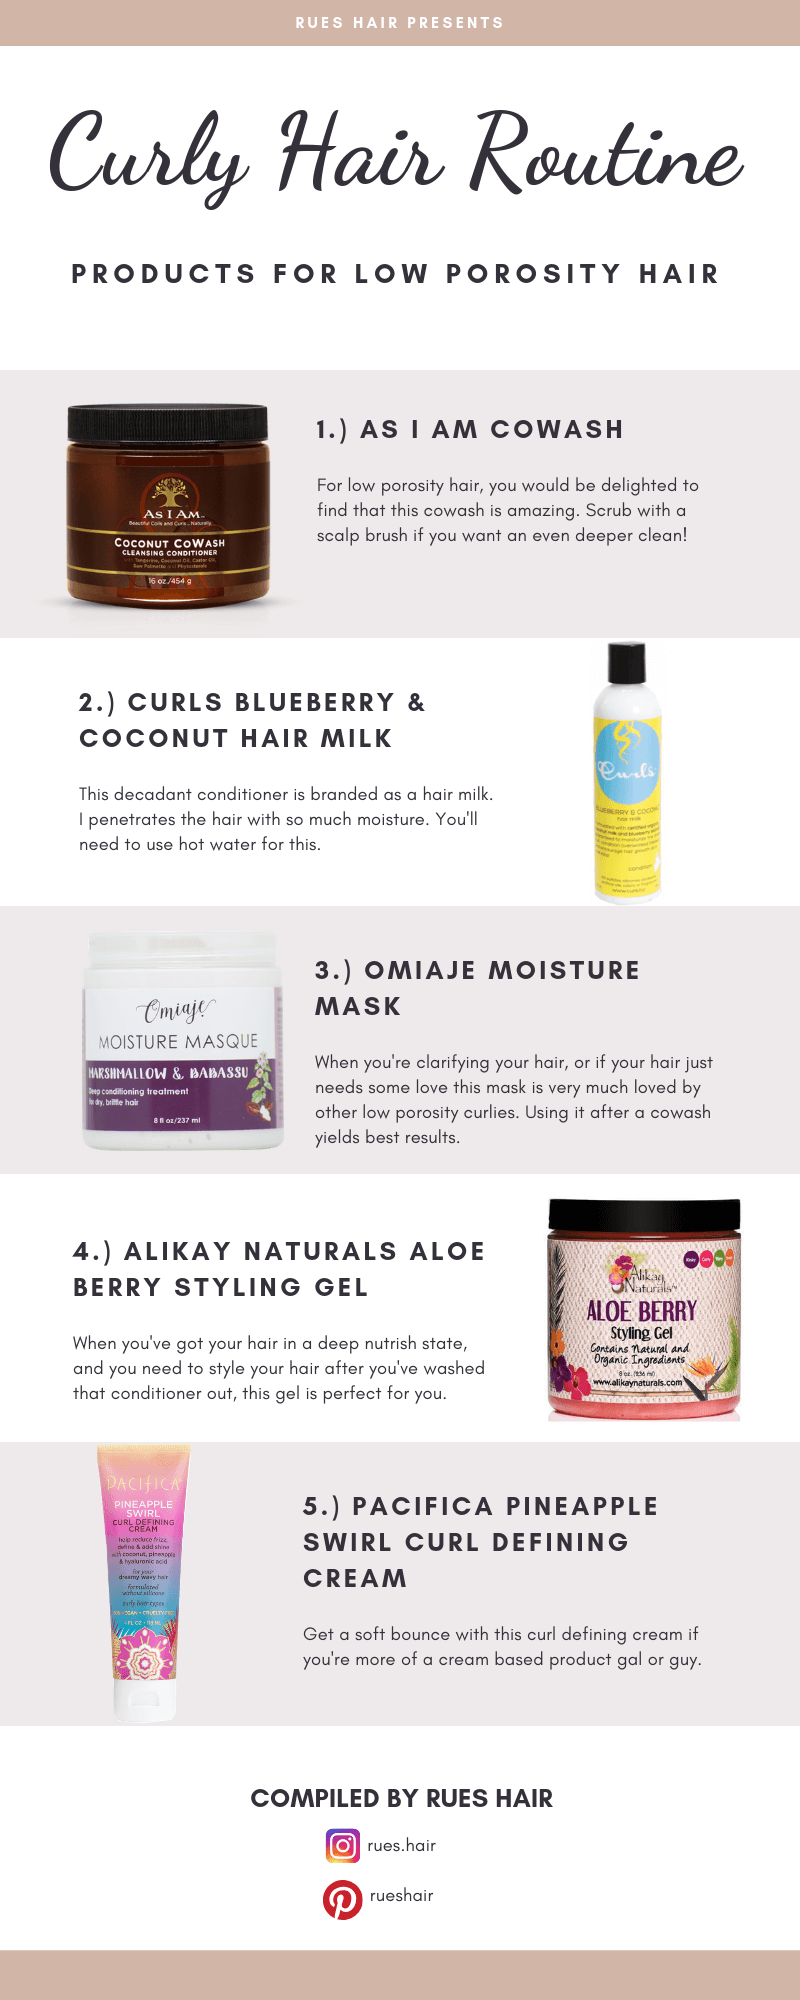 Curly Hair Routine For Low Porosity Hair Products Low Porosity Hair Products Curly Hair Routine Curly Hair Styles